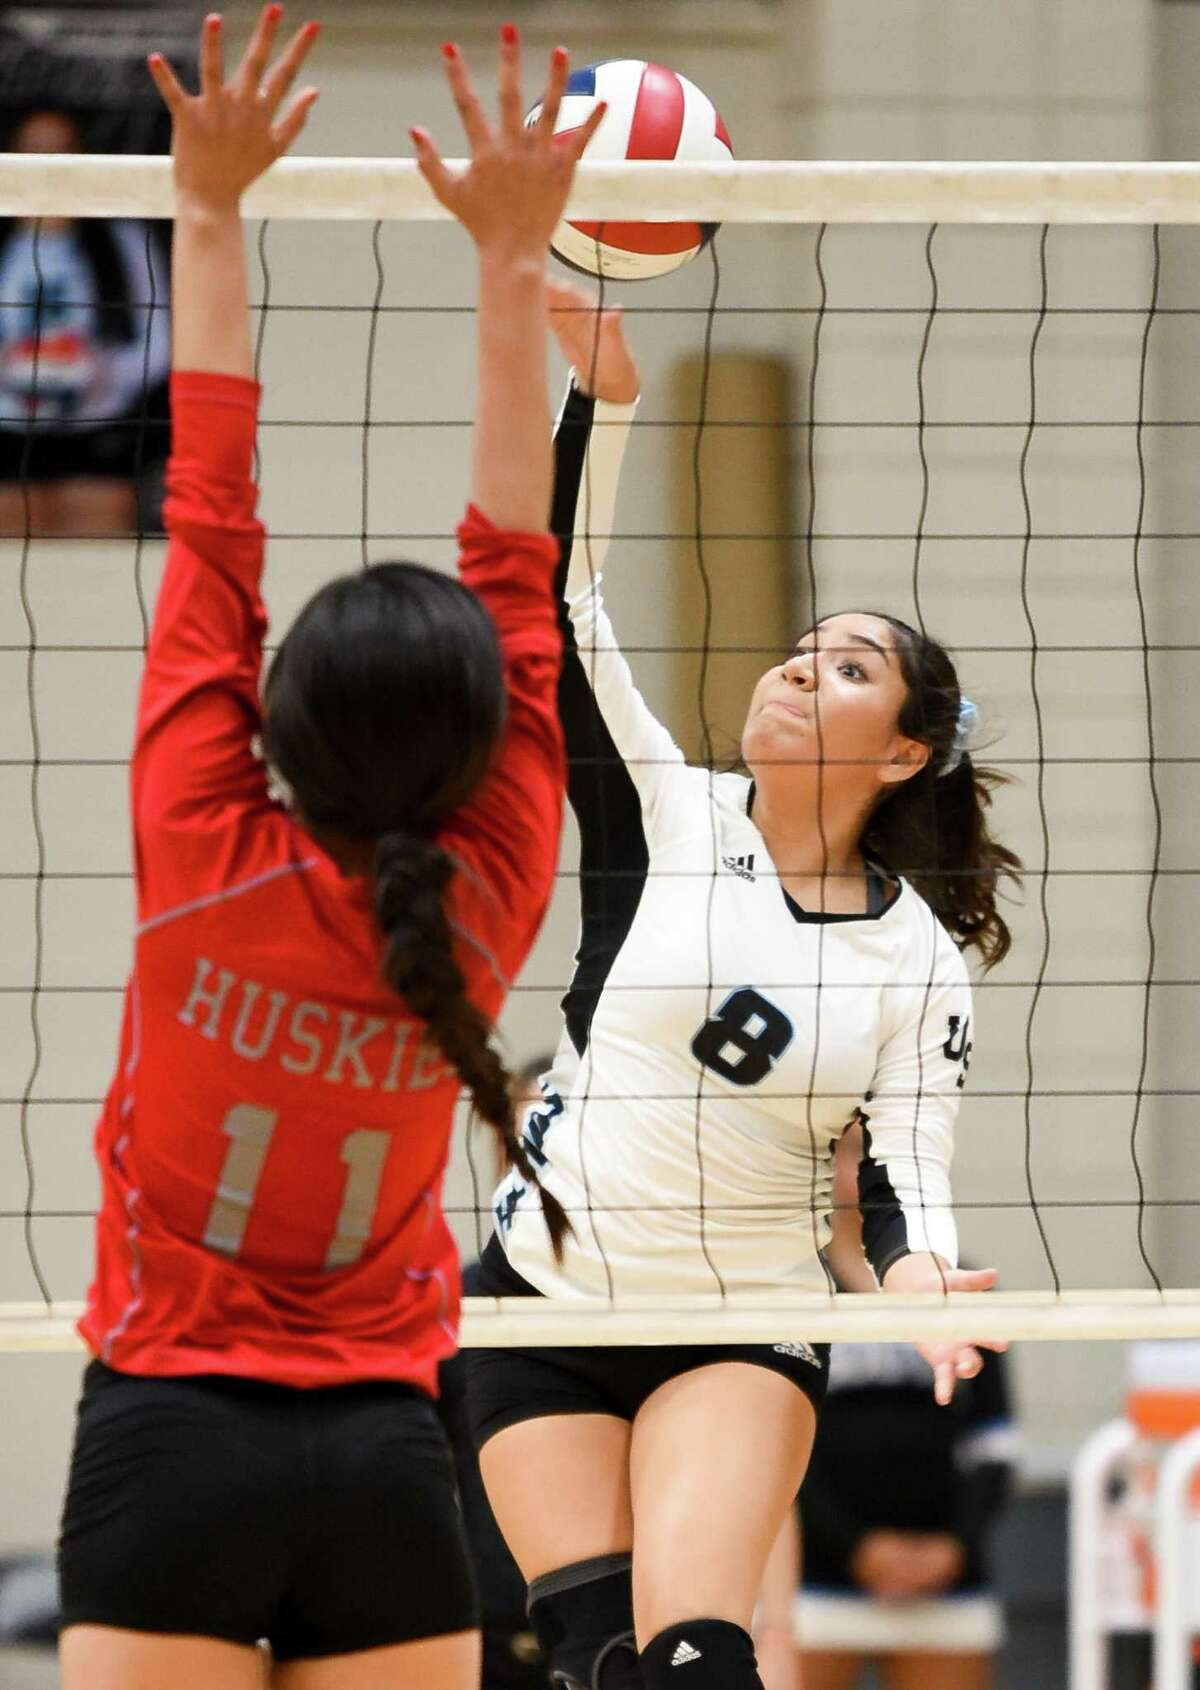 Jazmine Mendiola and United South went 1-2 on the opening day of the McAllen Poundfest tournament.